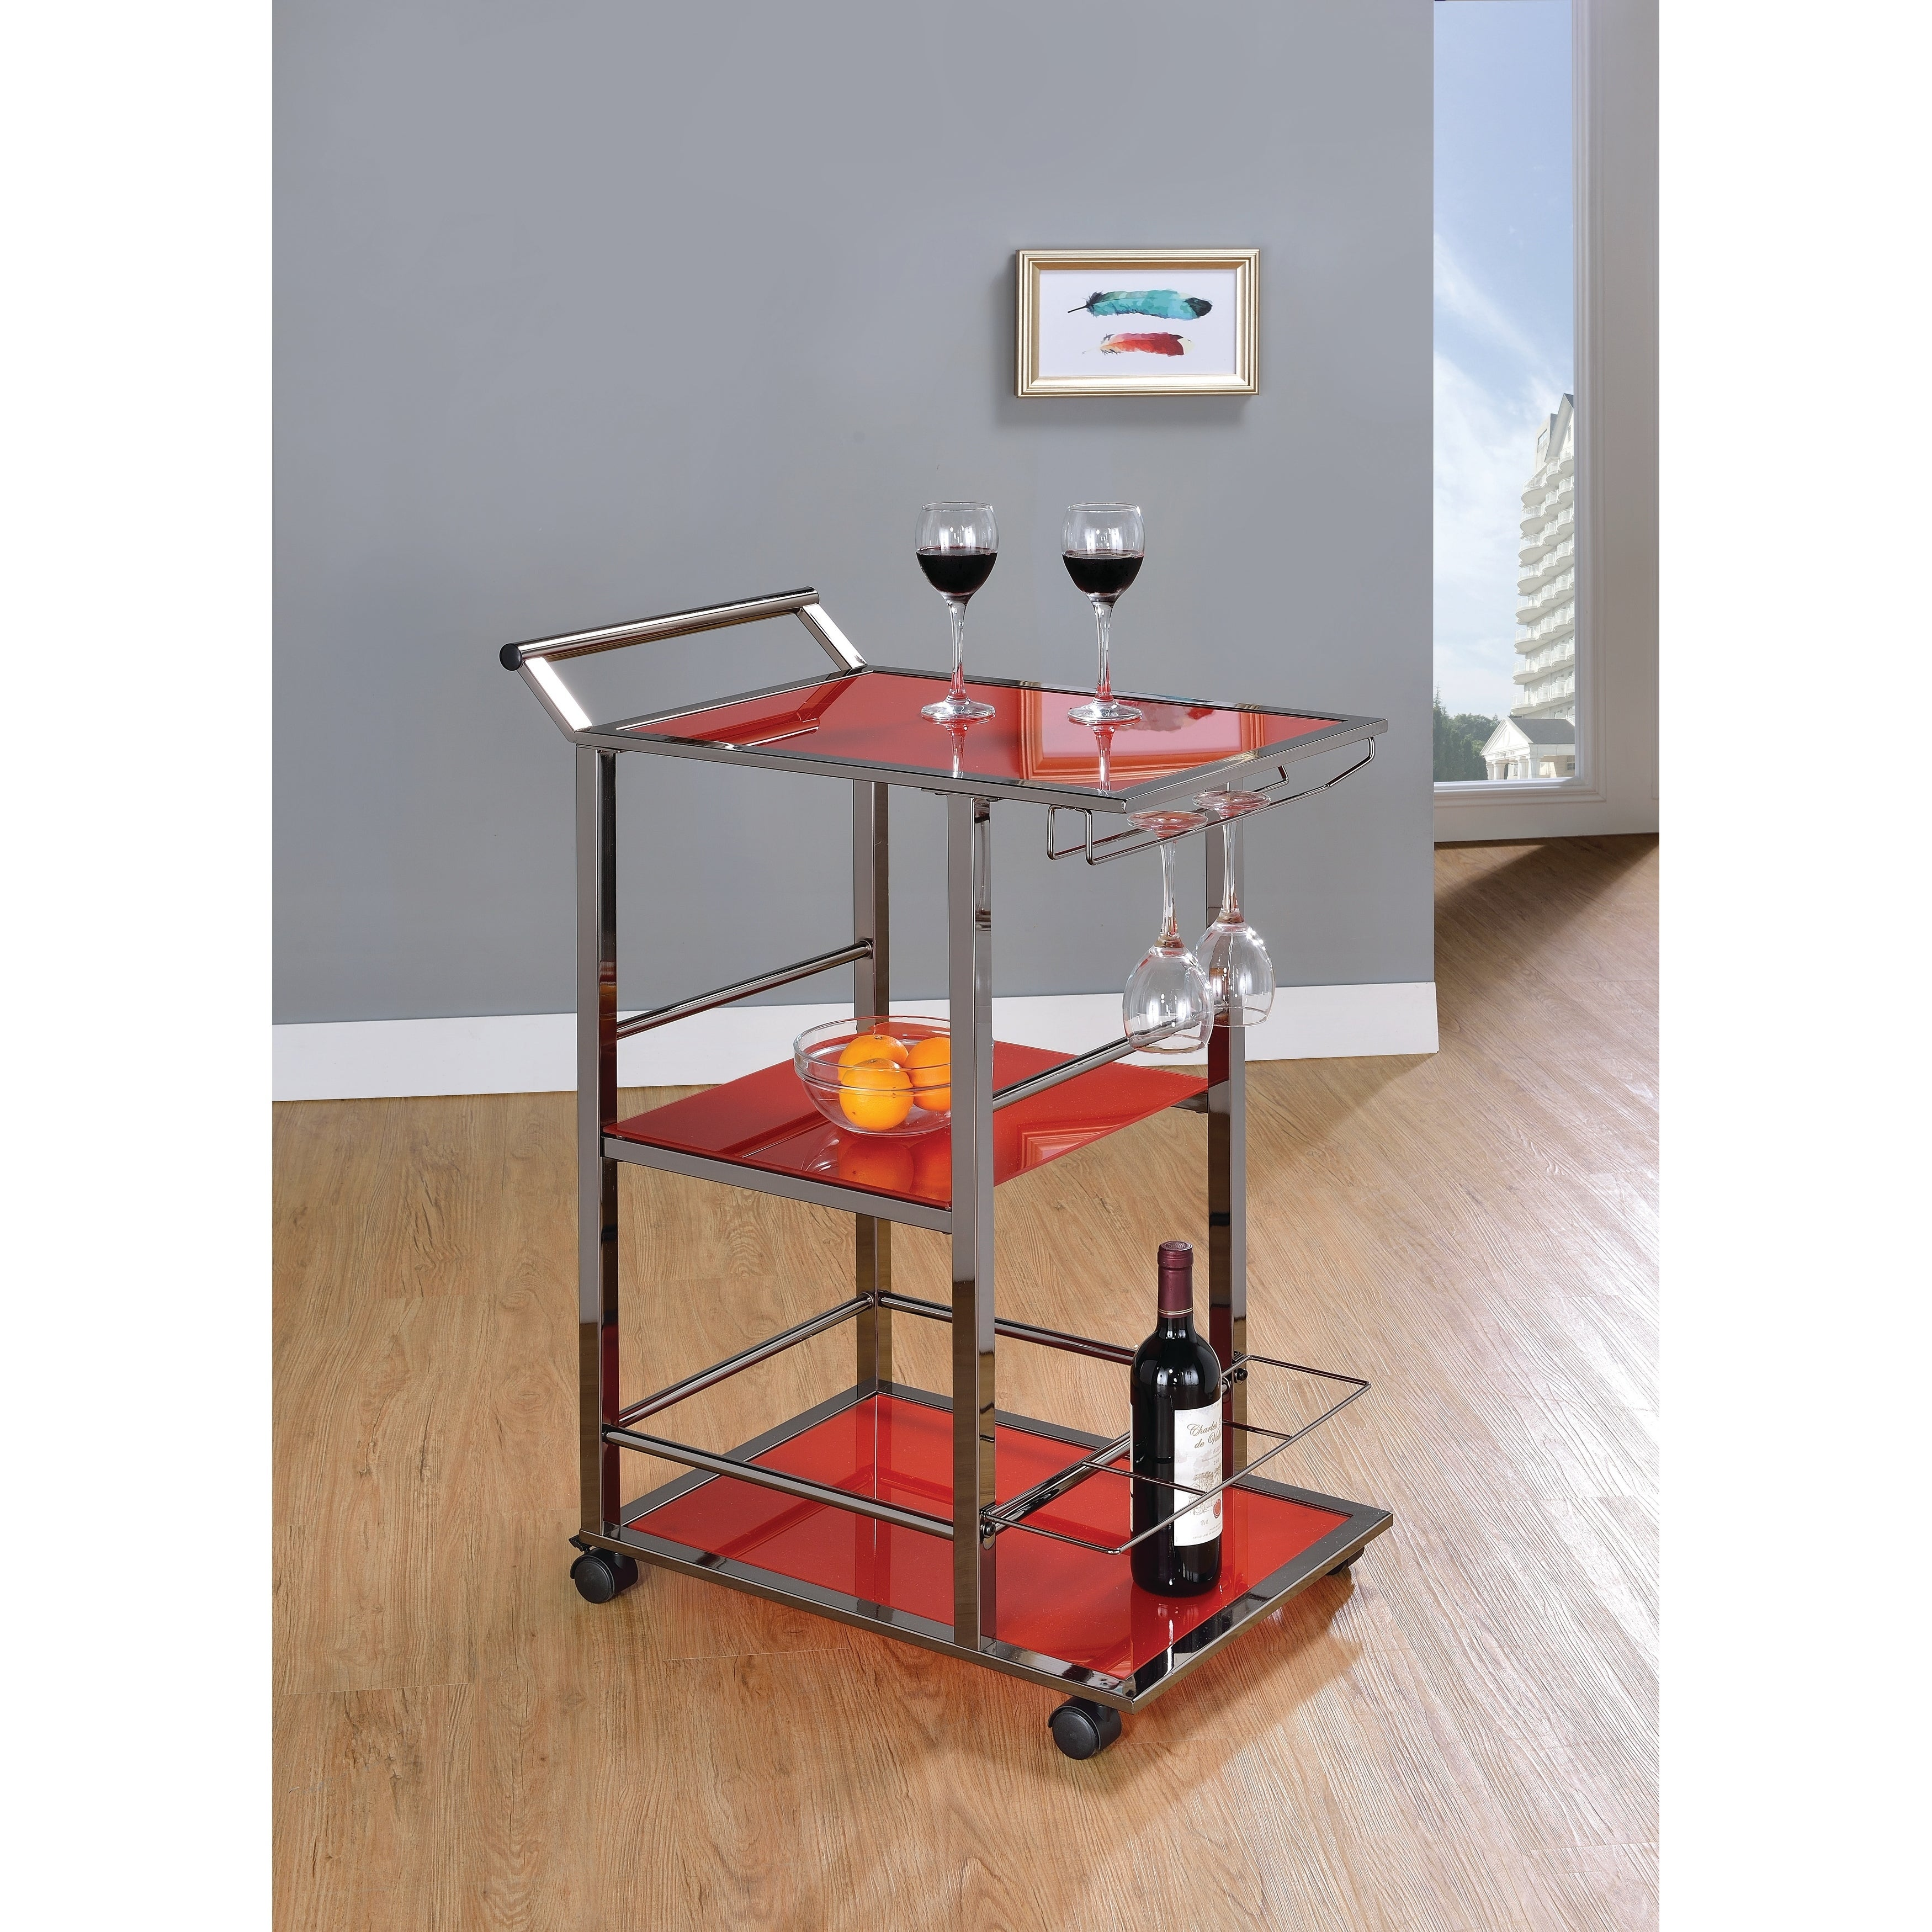 Shop Simple Living Rolling Galvin Microwave Cart: Shop Industrial Red Serving Cart